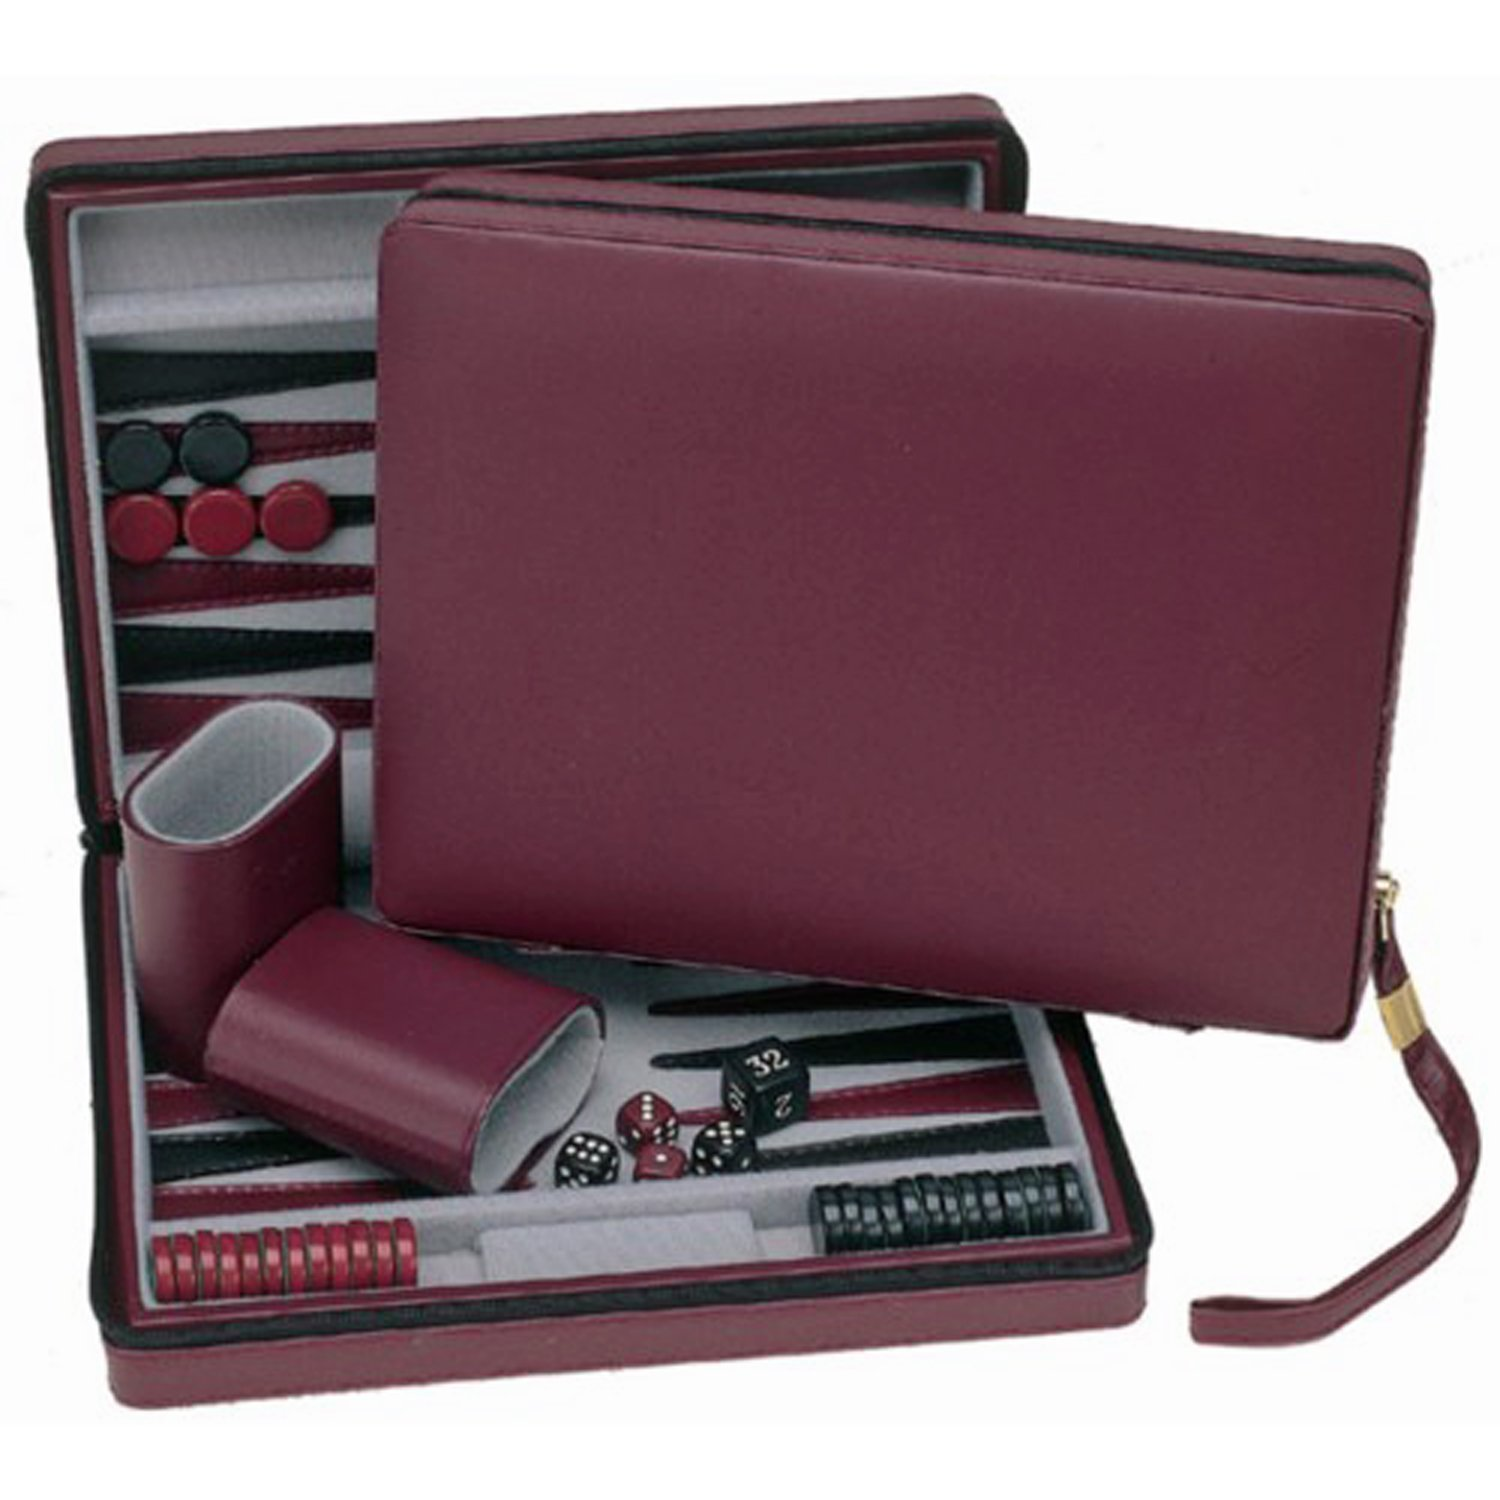 Burgundy Magnetic Backgammon Set with Carrying Strap - Travel Size